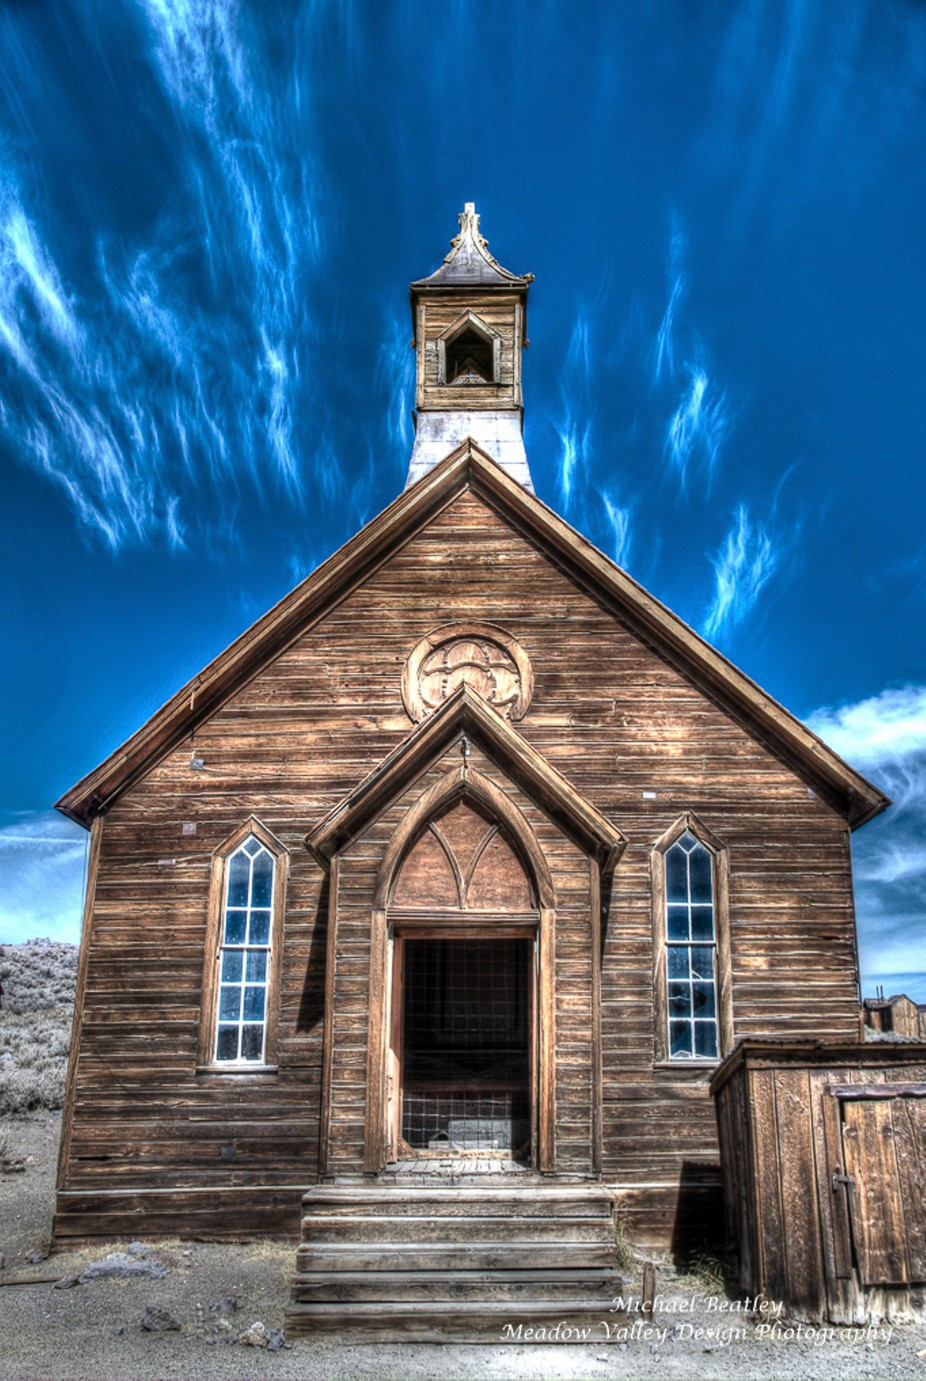 Souls to Heaven by michaelbeatley - Simple Architecture Photo Contest